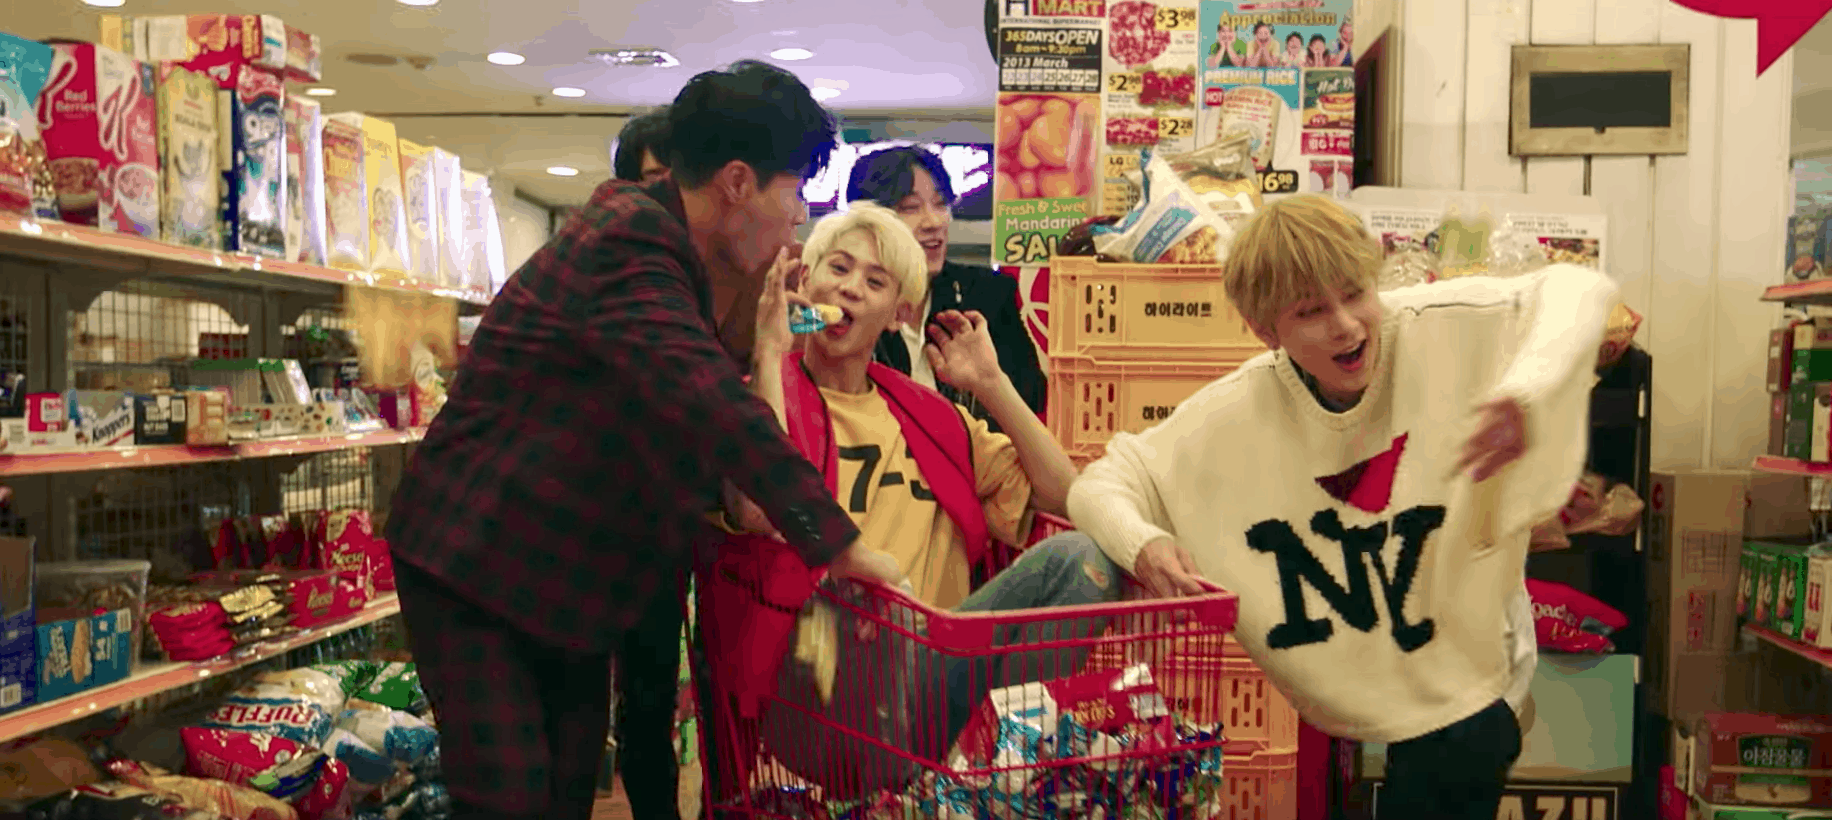 Highlight can be better music video fashion: The band members wearing NY sweatshirts and goofing around in a grocery store